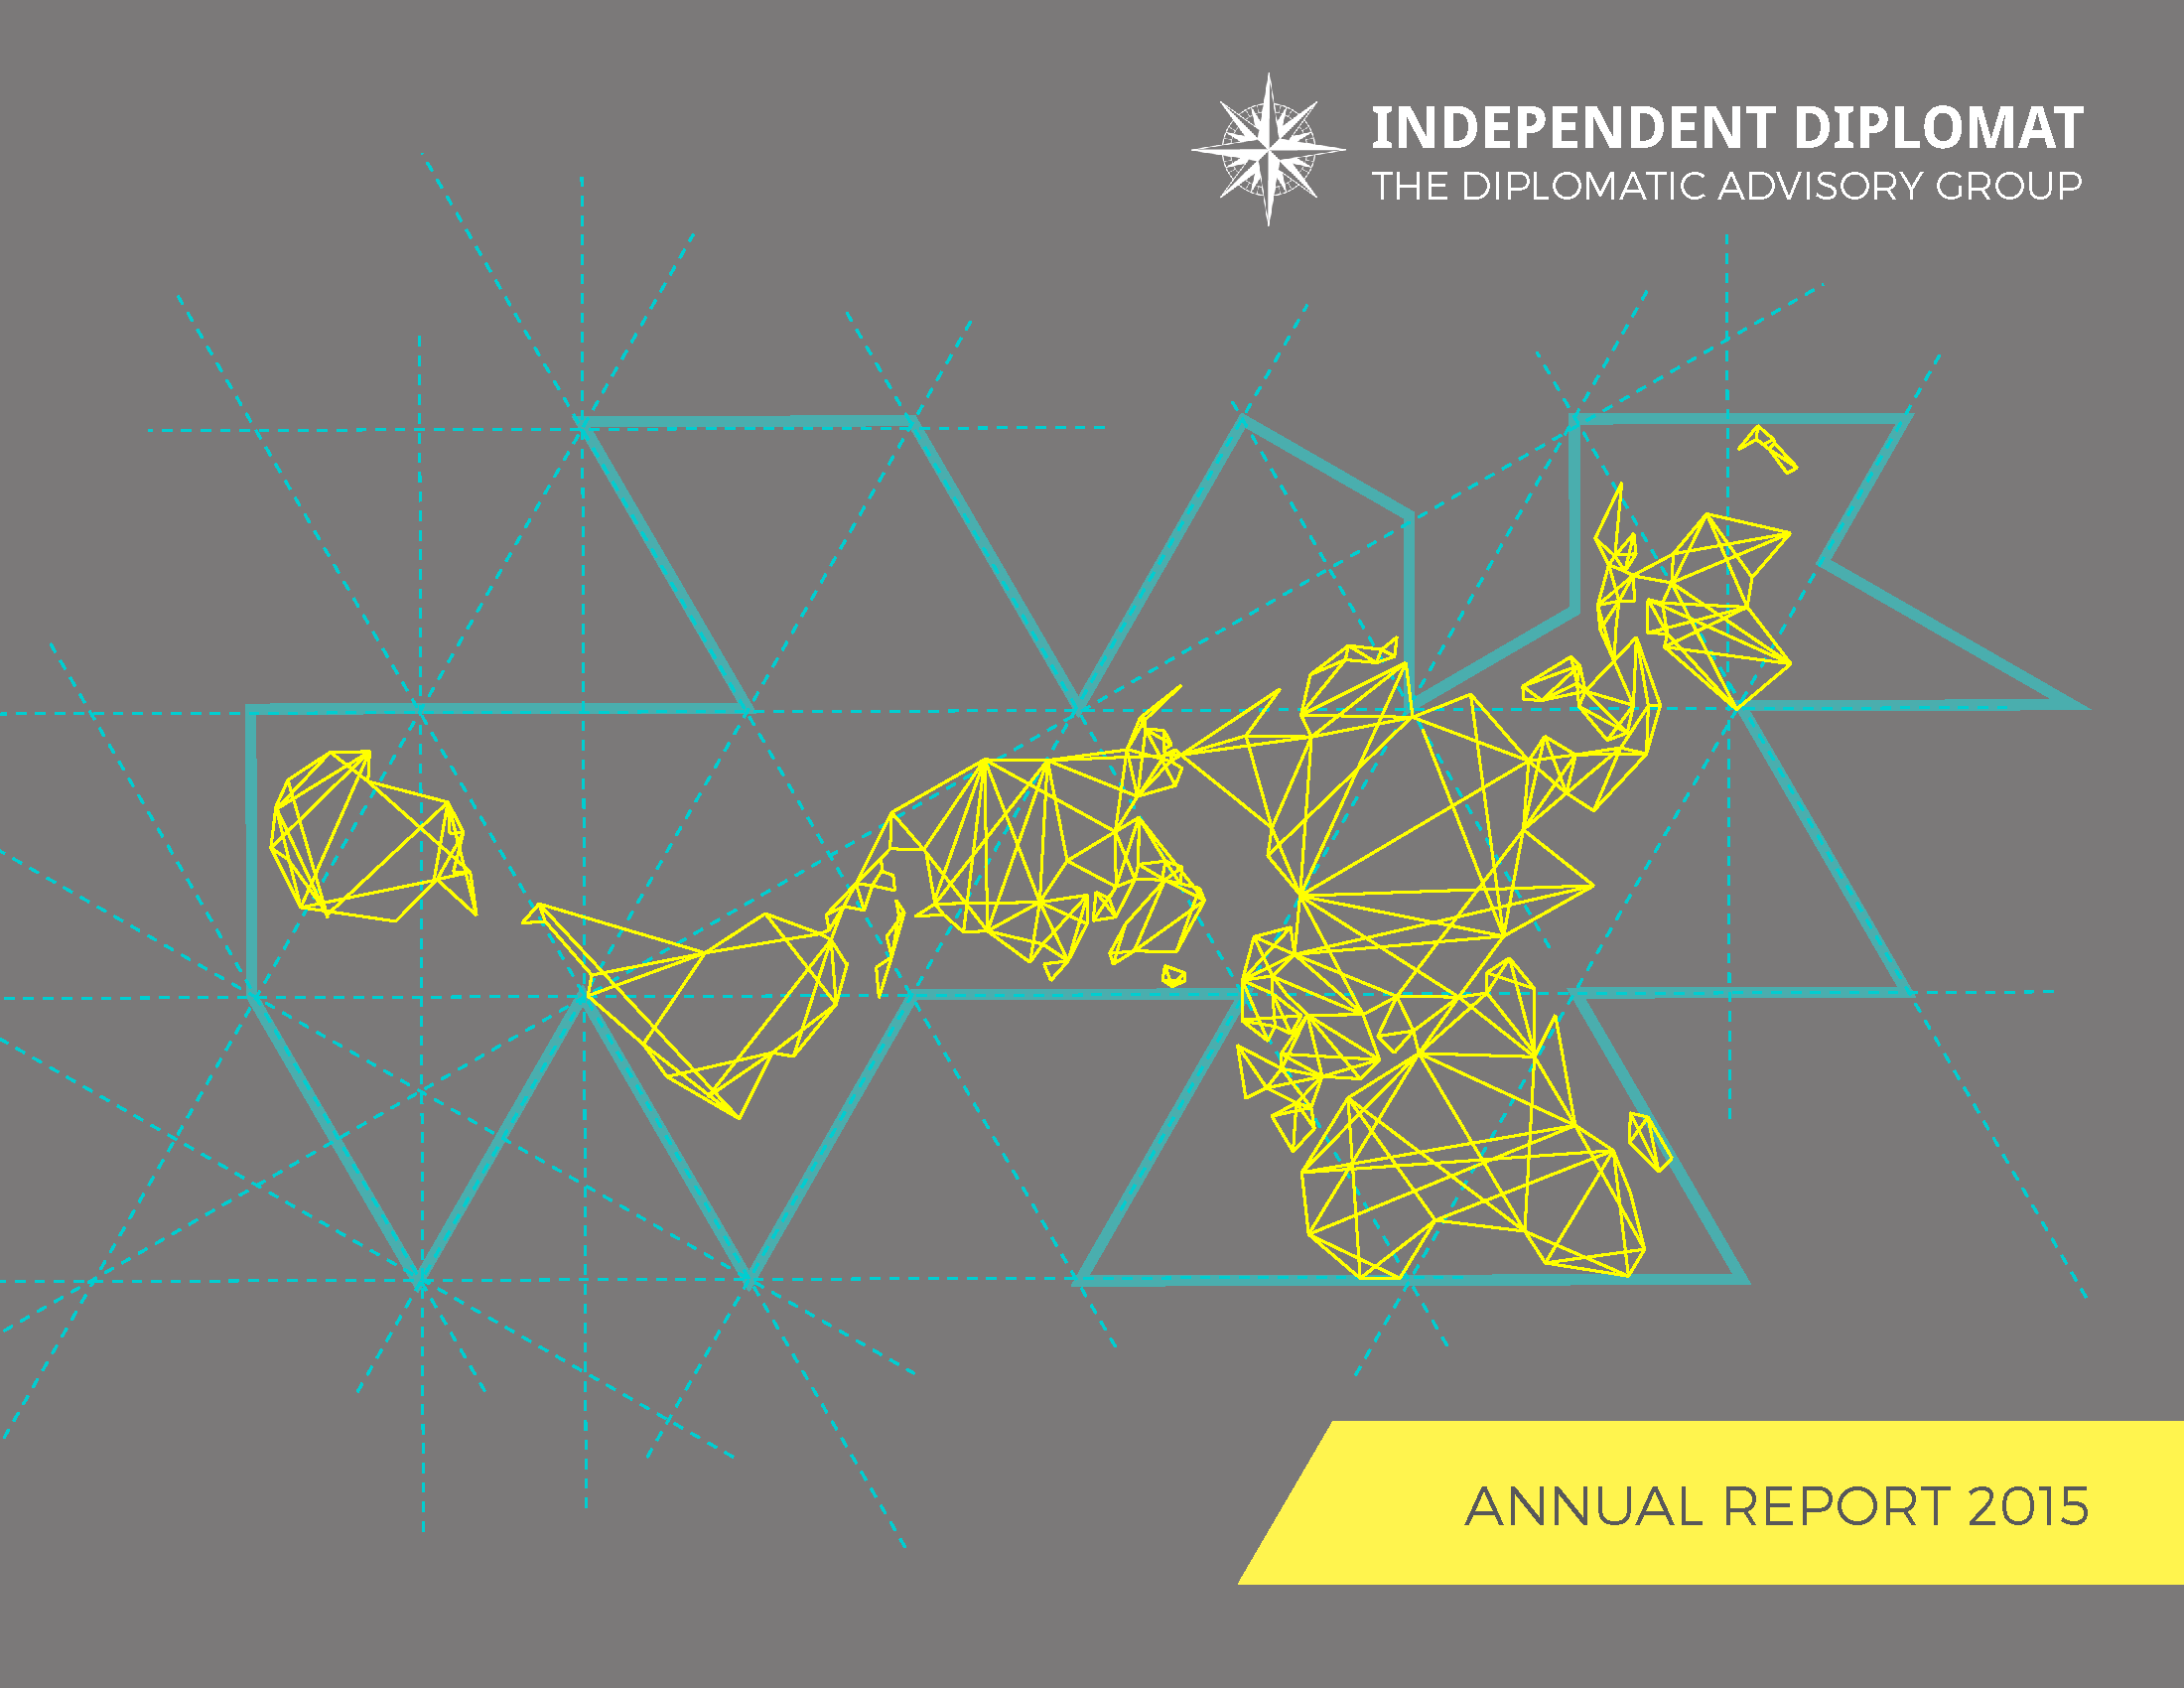 ID Annual Report 2015 Cover Image high res